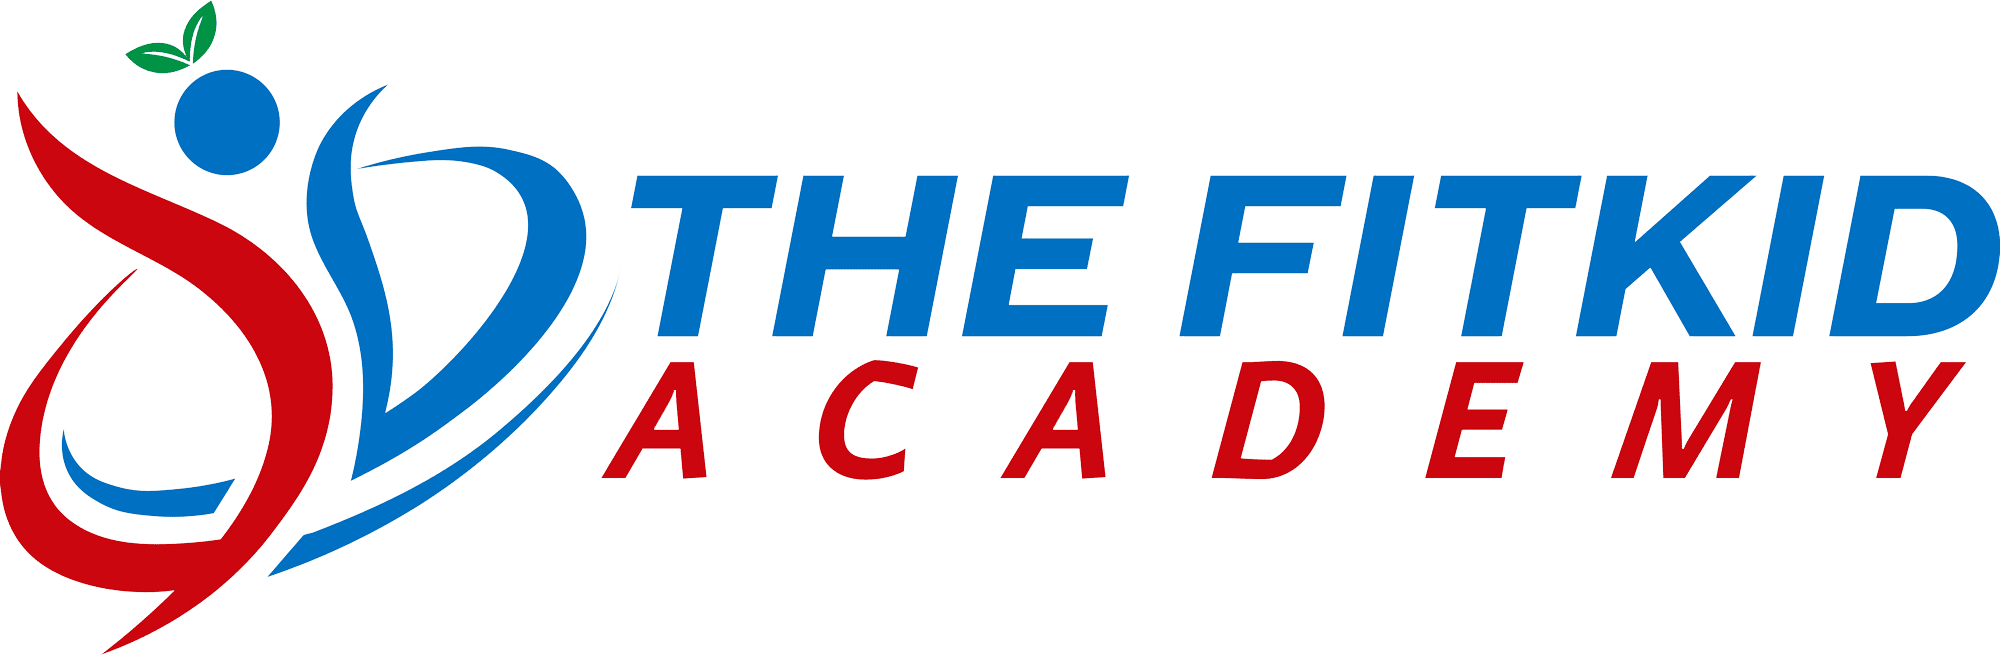 The FitKid Academy